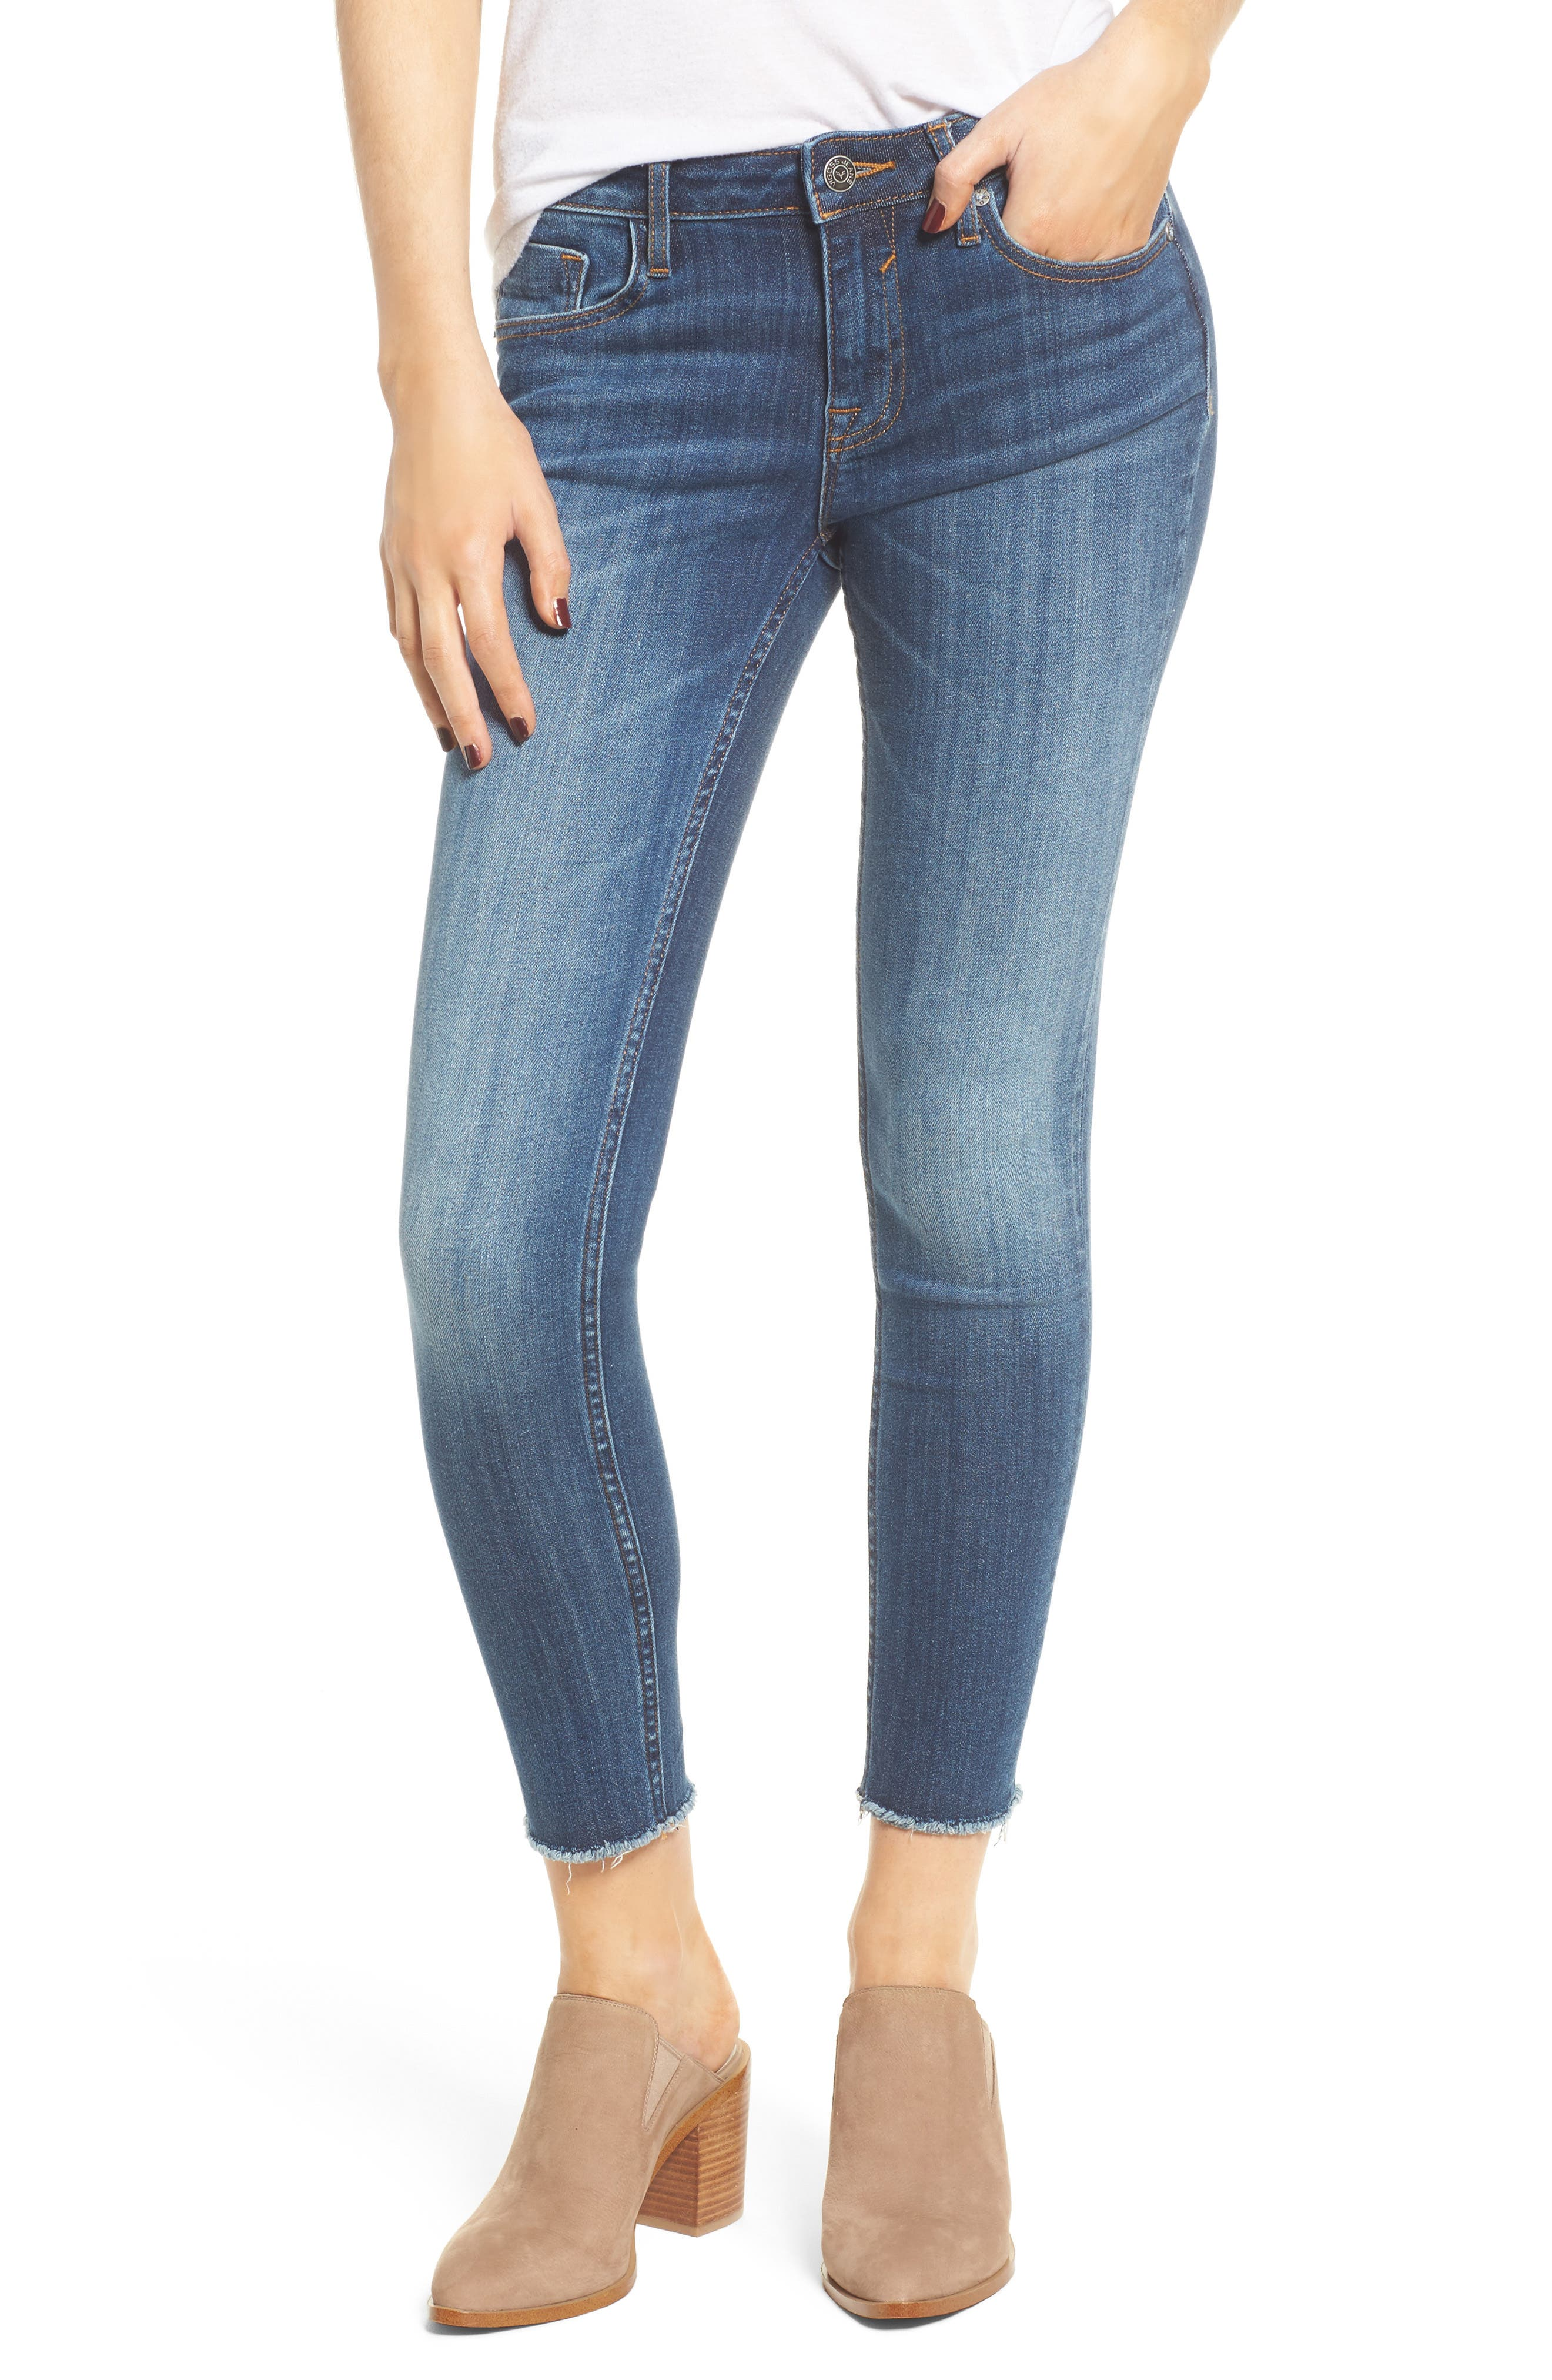 Jagger Mid-Rise Skinny Jeans,                             Main thumbnail 1, color,                             Med Wash